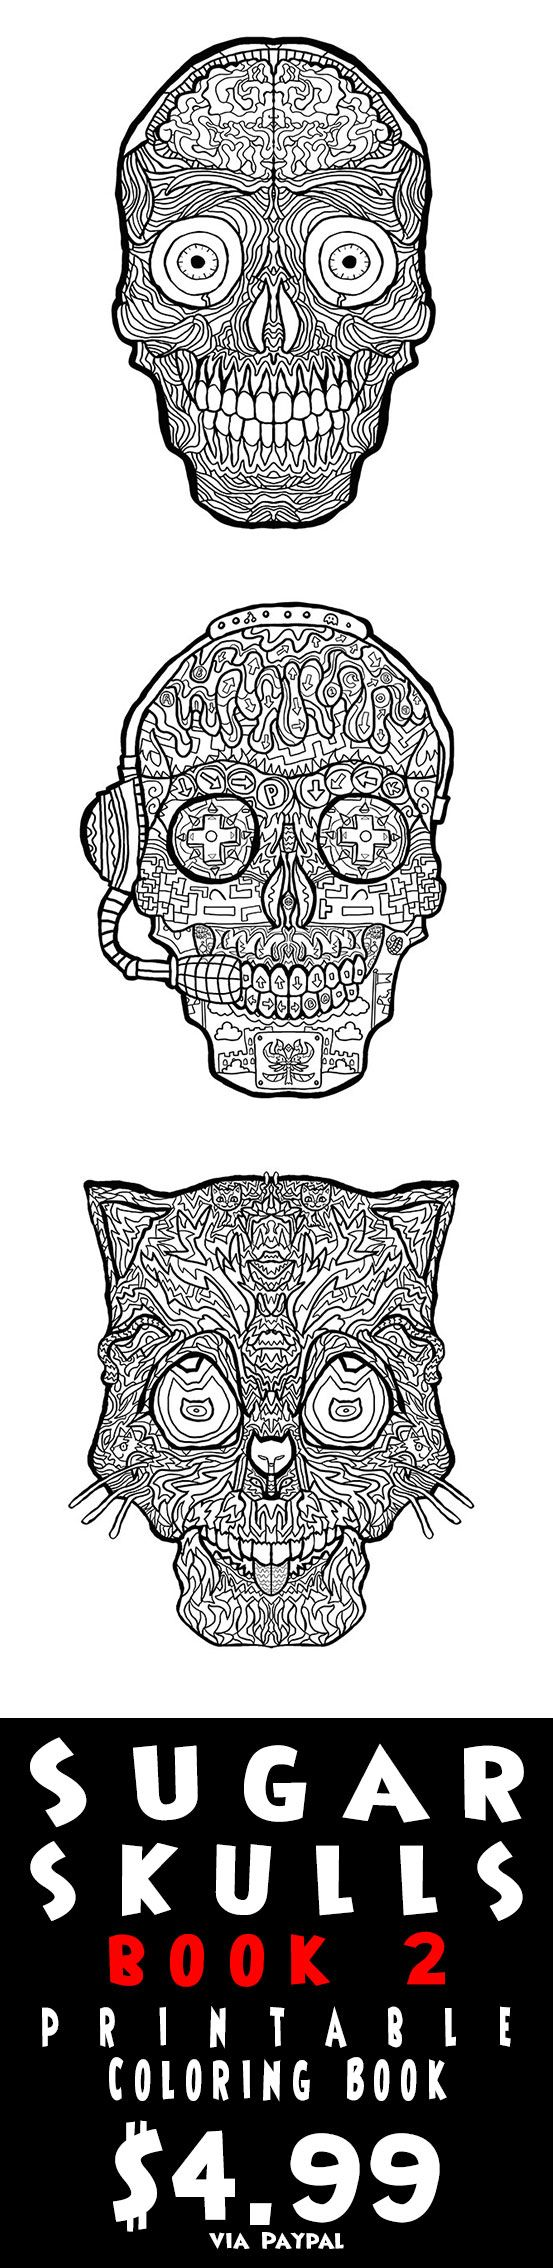 Halloween art therapy coloring pages - Print Your Own Complciated Coloring Sugar Skull Coloring Pages Great For Halloween Decorations